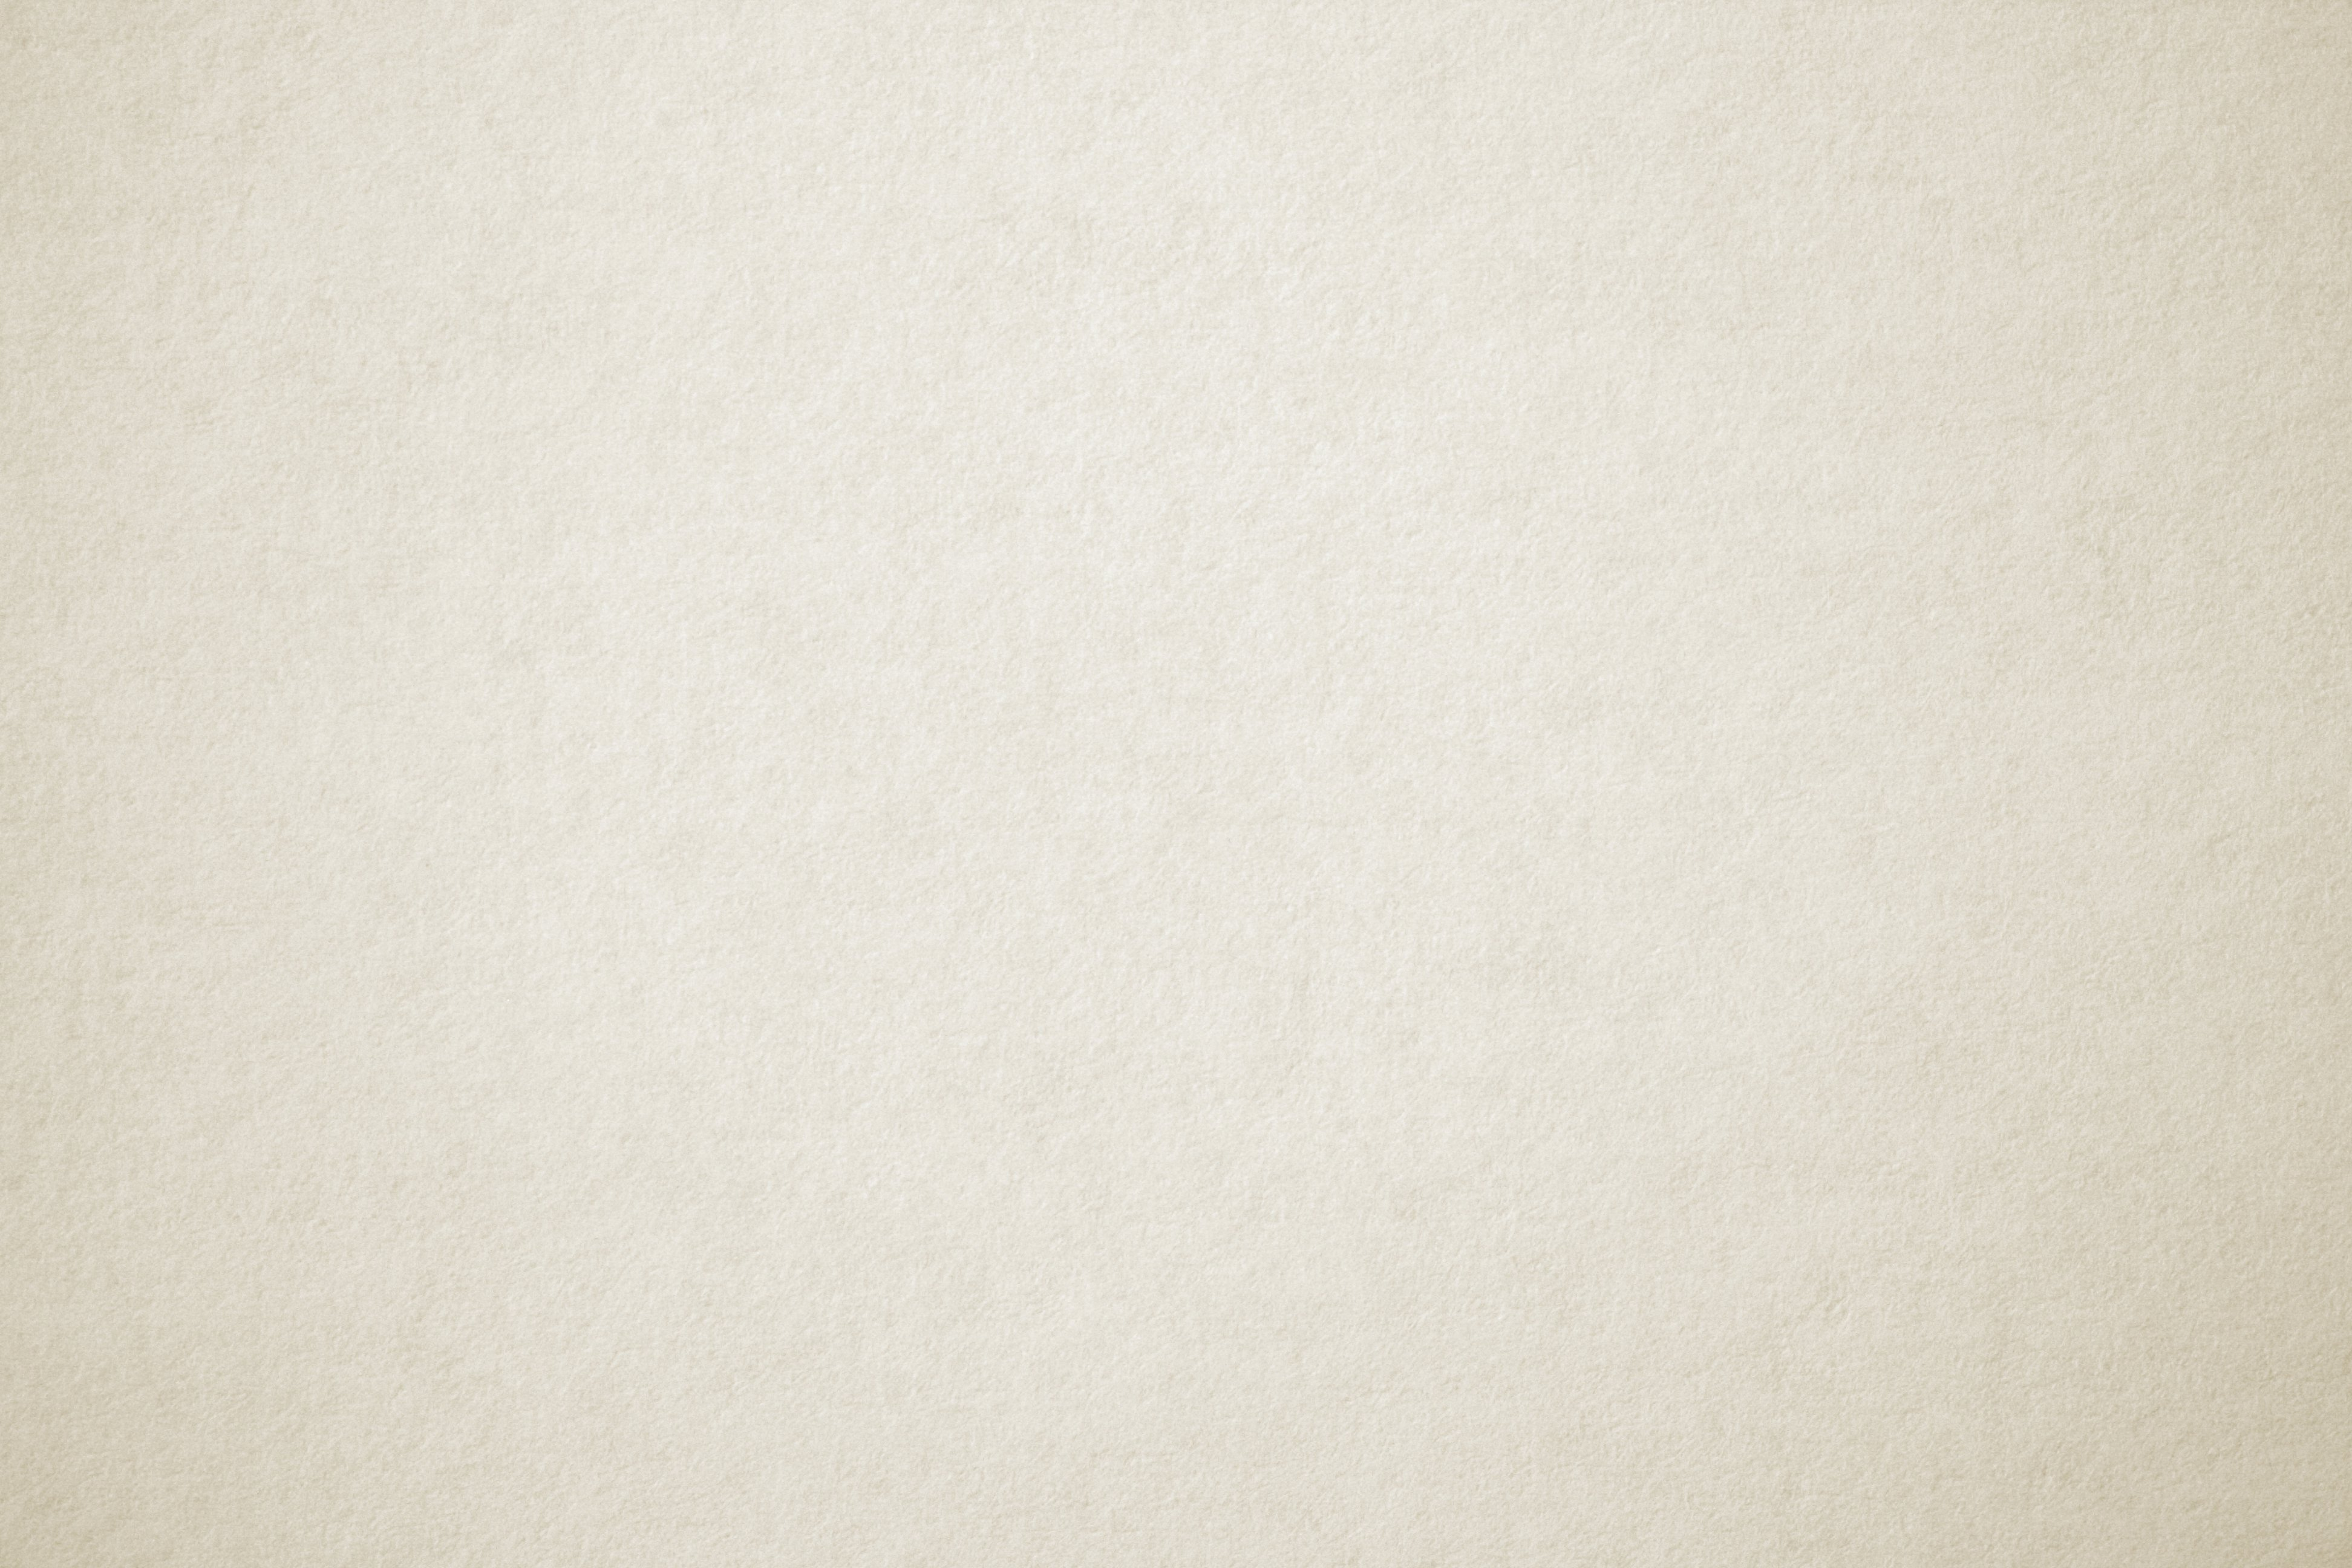 Beige Paper Texture   High Resolution Photo   Dimensions 3888 3888x2592